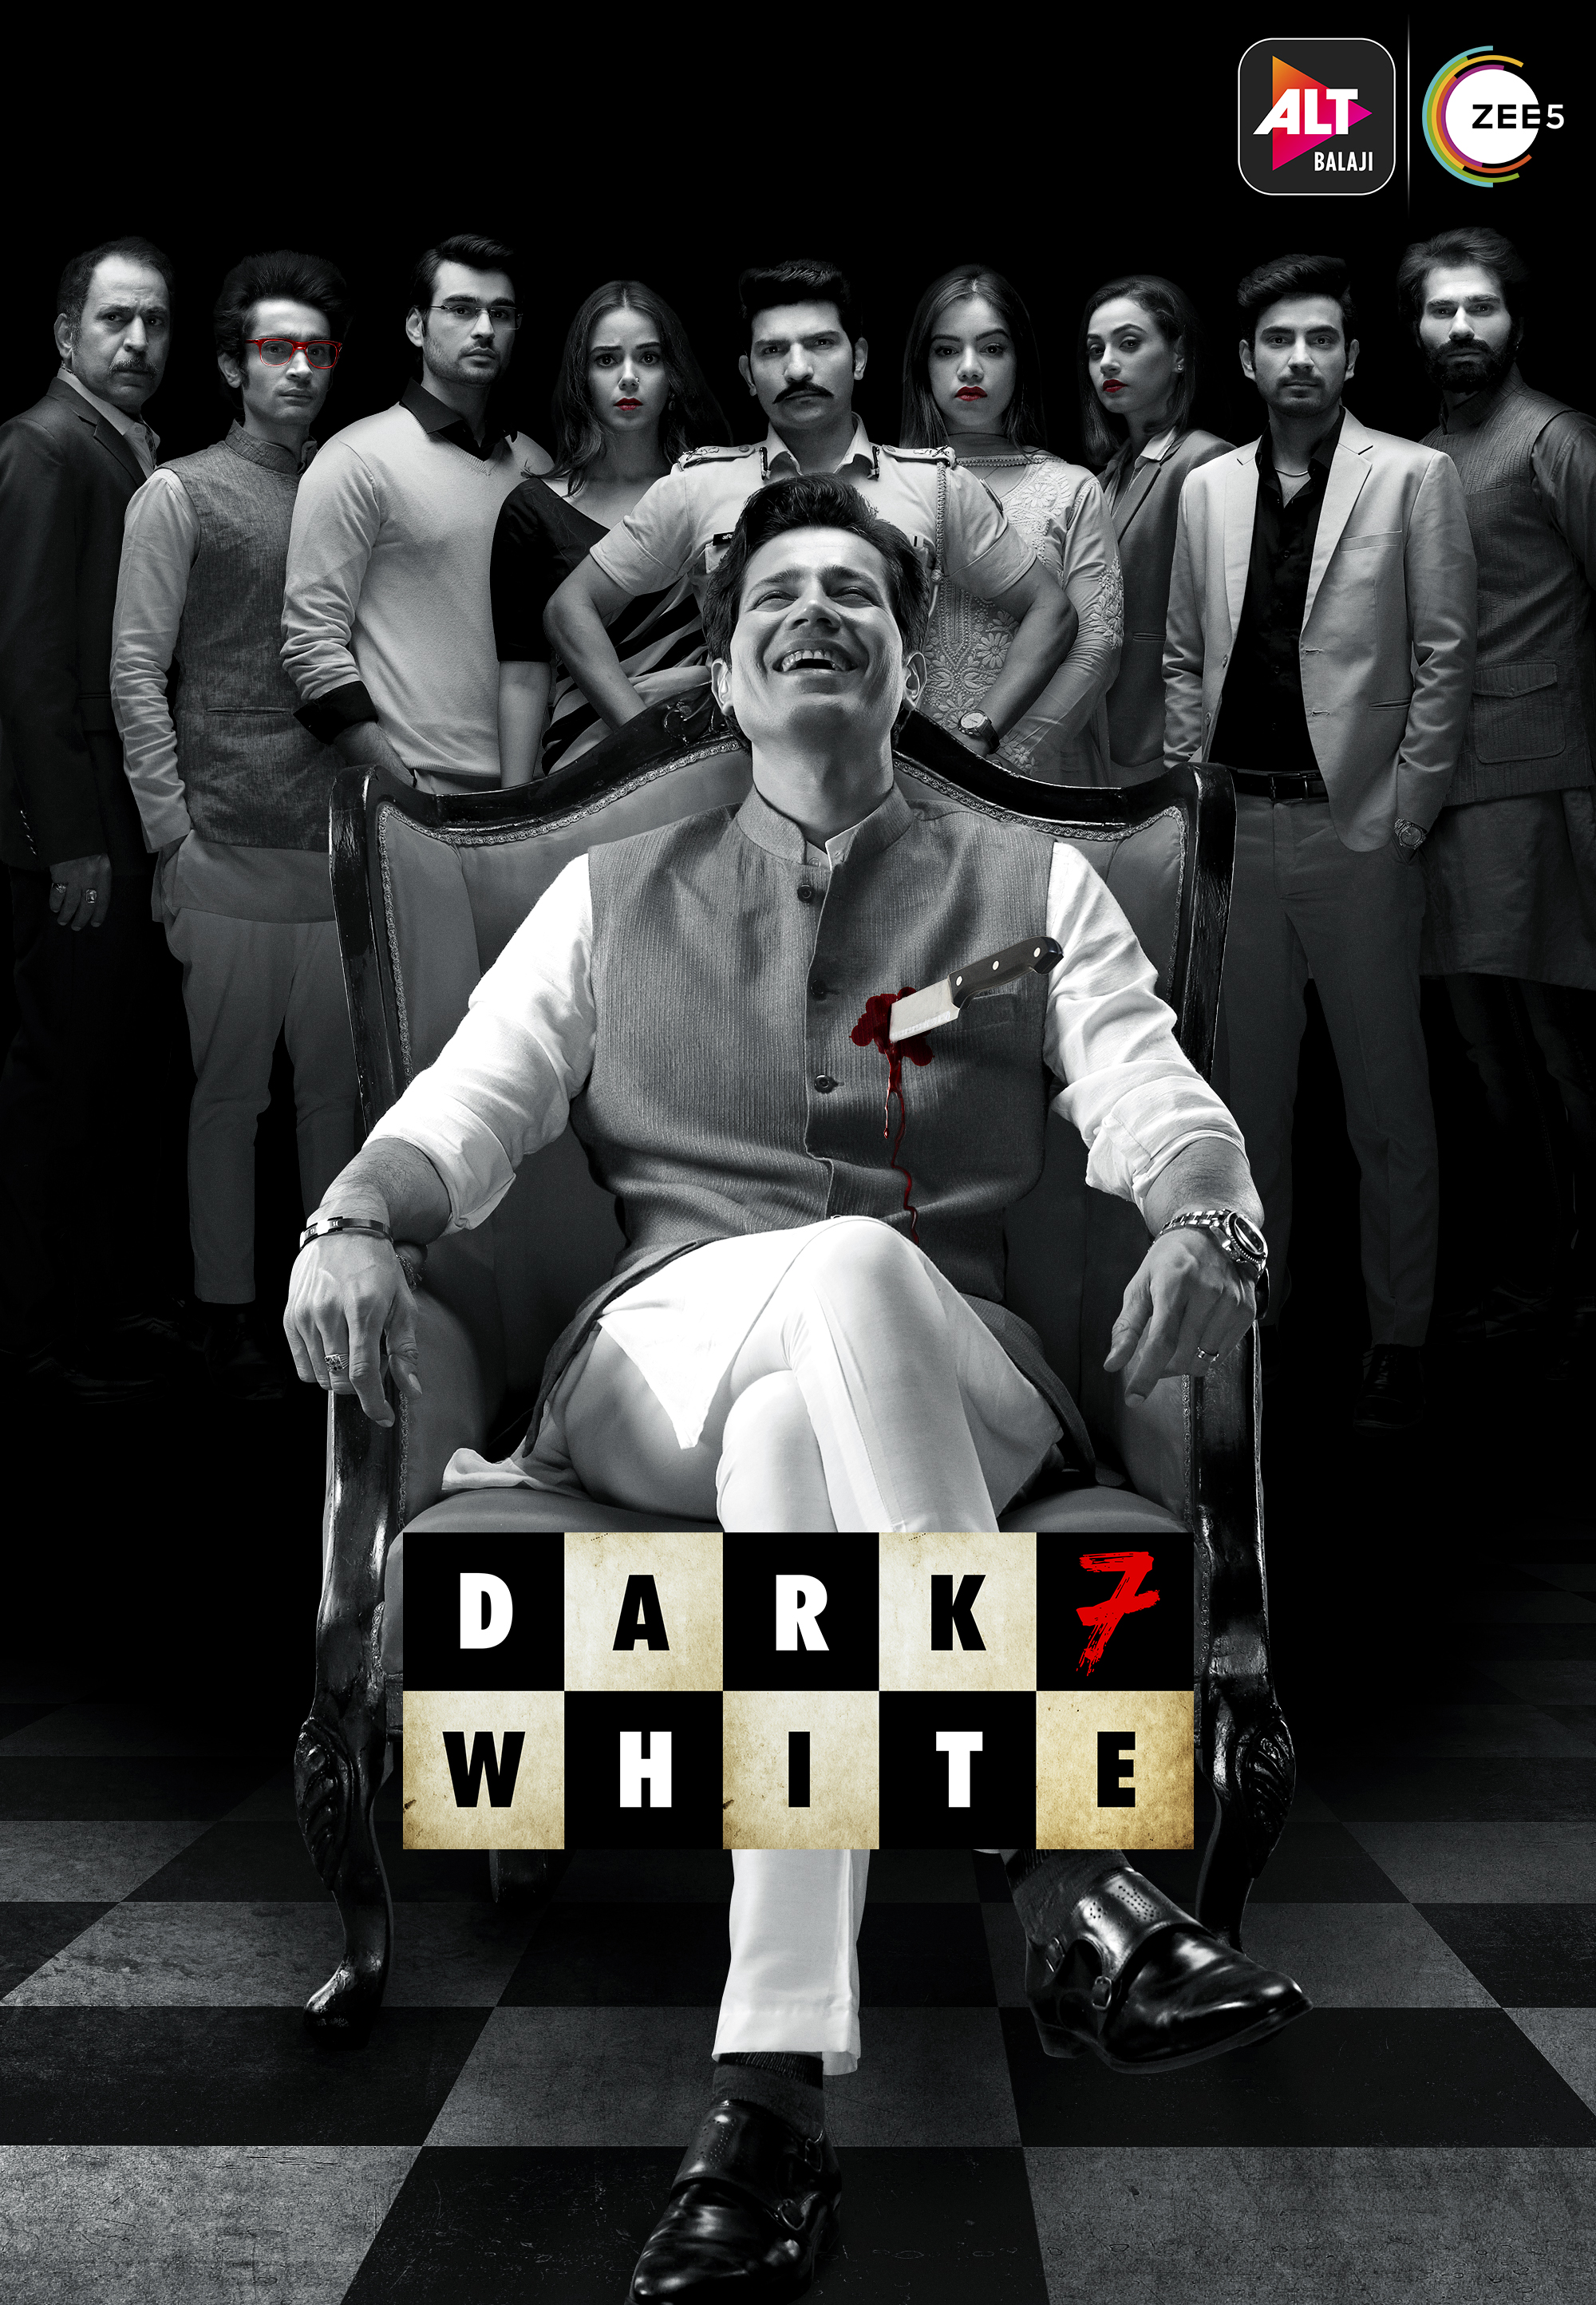 Dark 7 White 2020 S01 Hindi Complete ALTBalaji Original Web Series 650MB HDRip Download